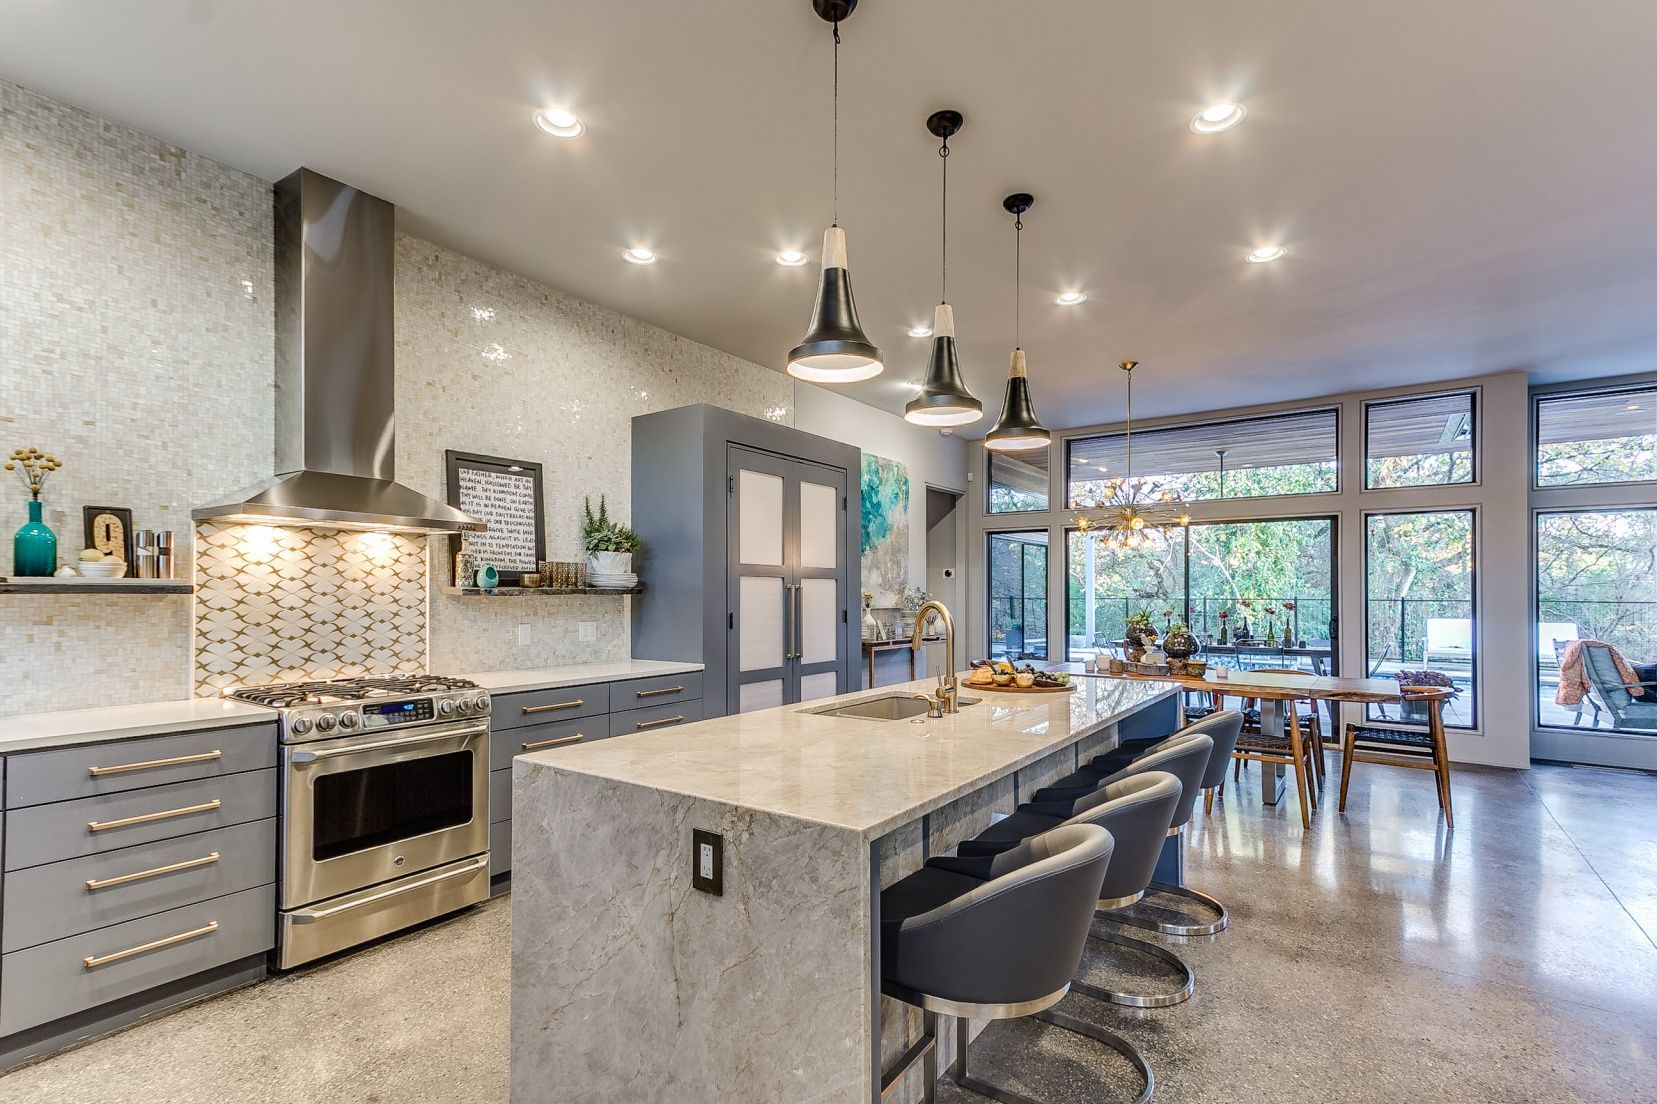 How To Choose New Kitchen Countertops When Kitchen ...